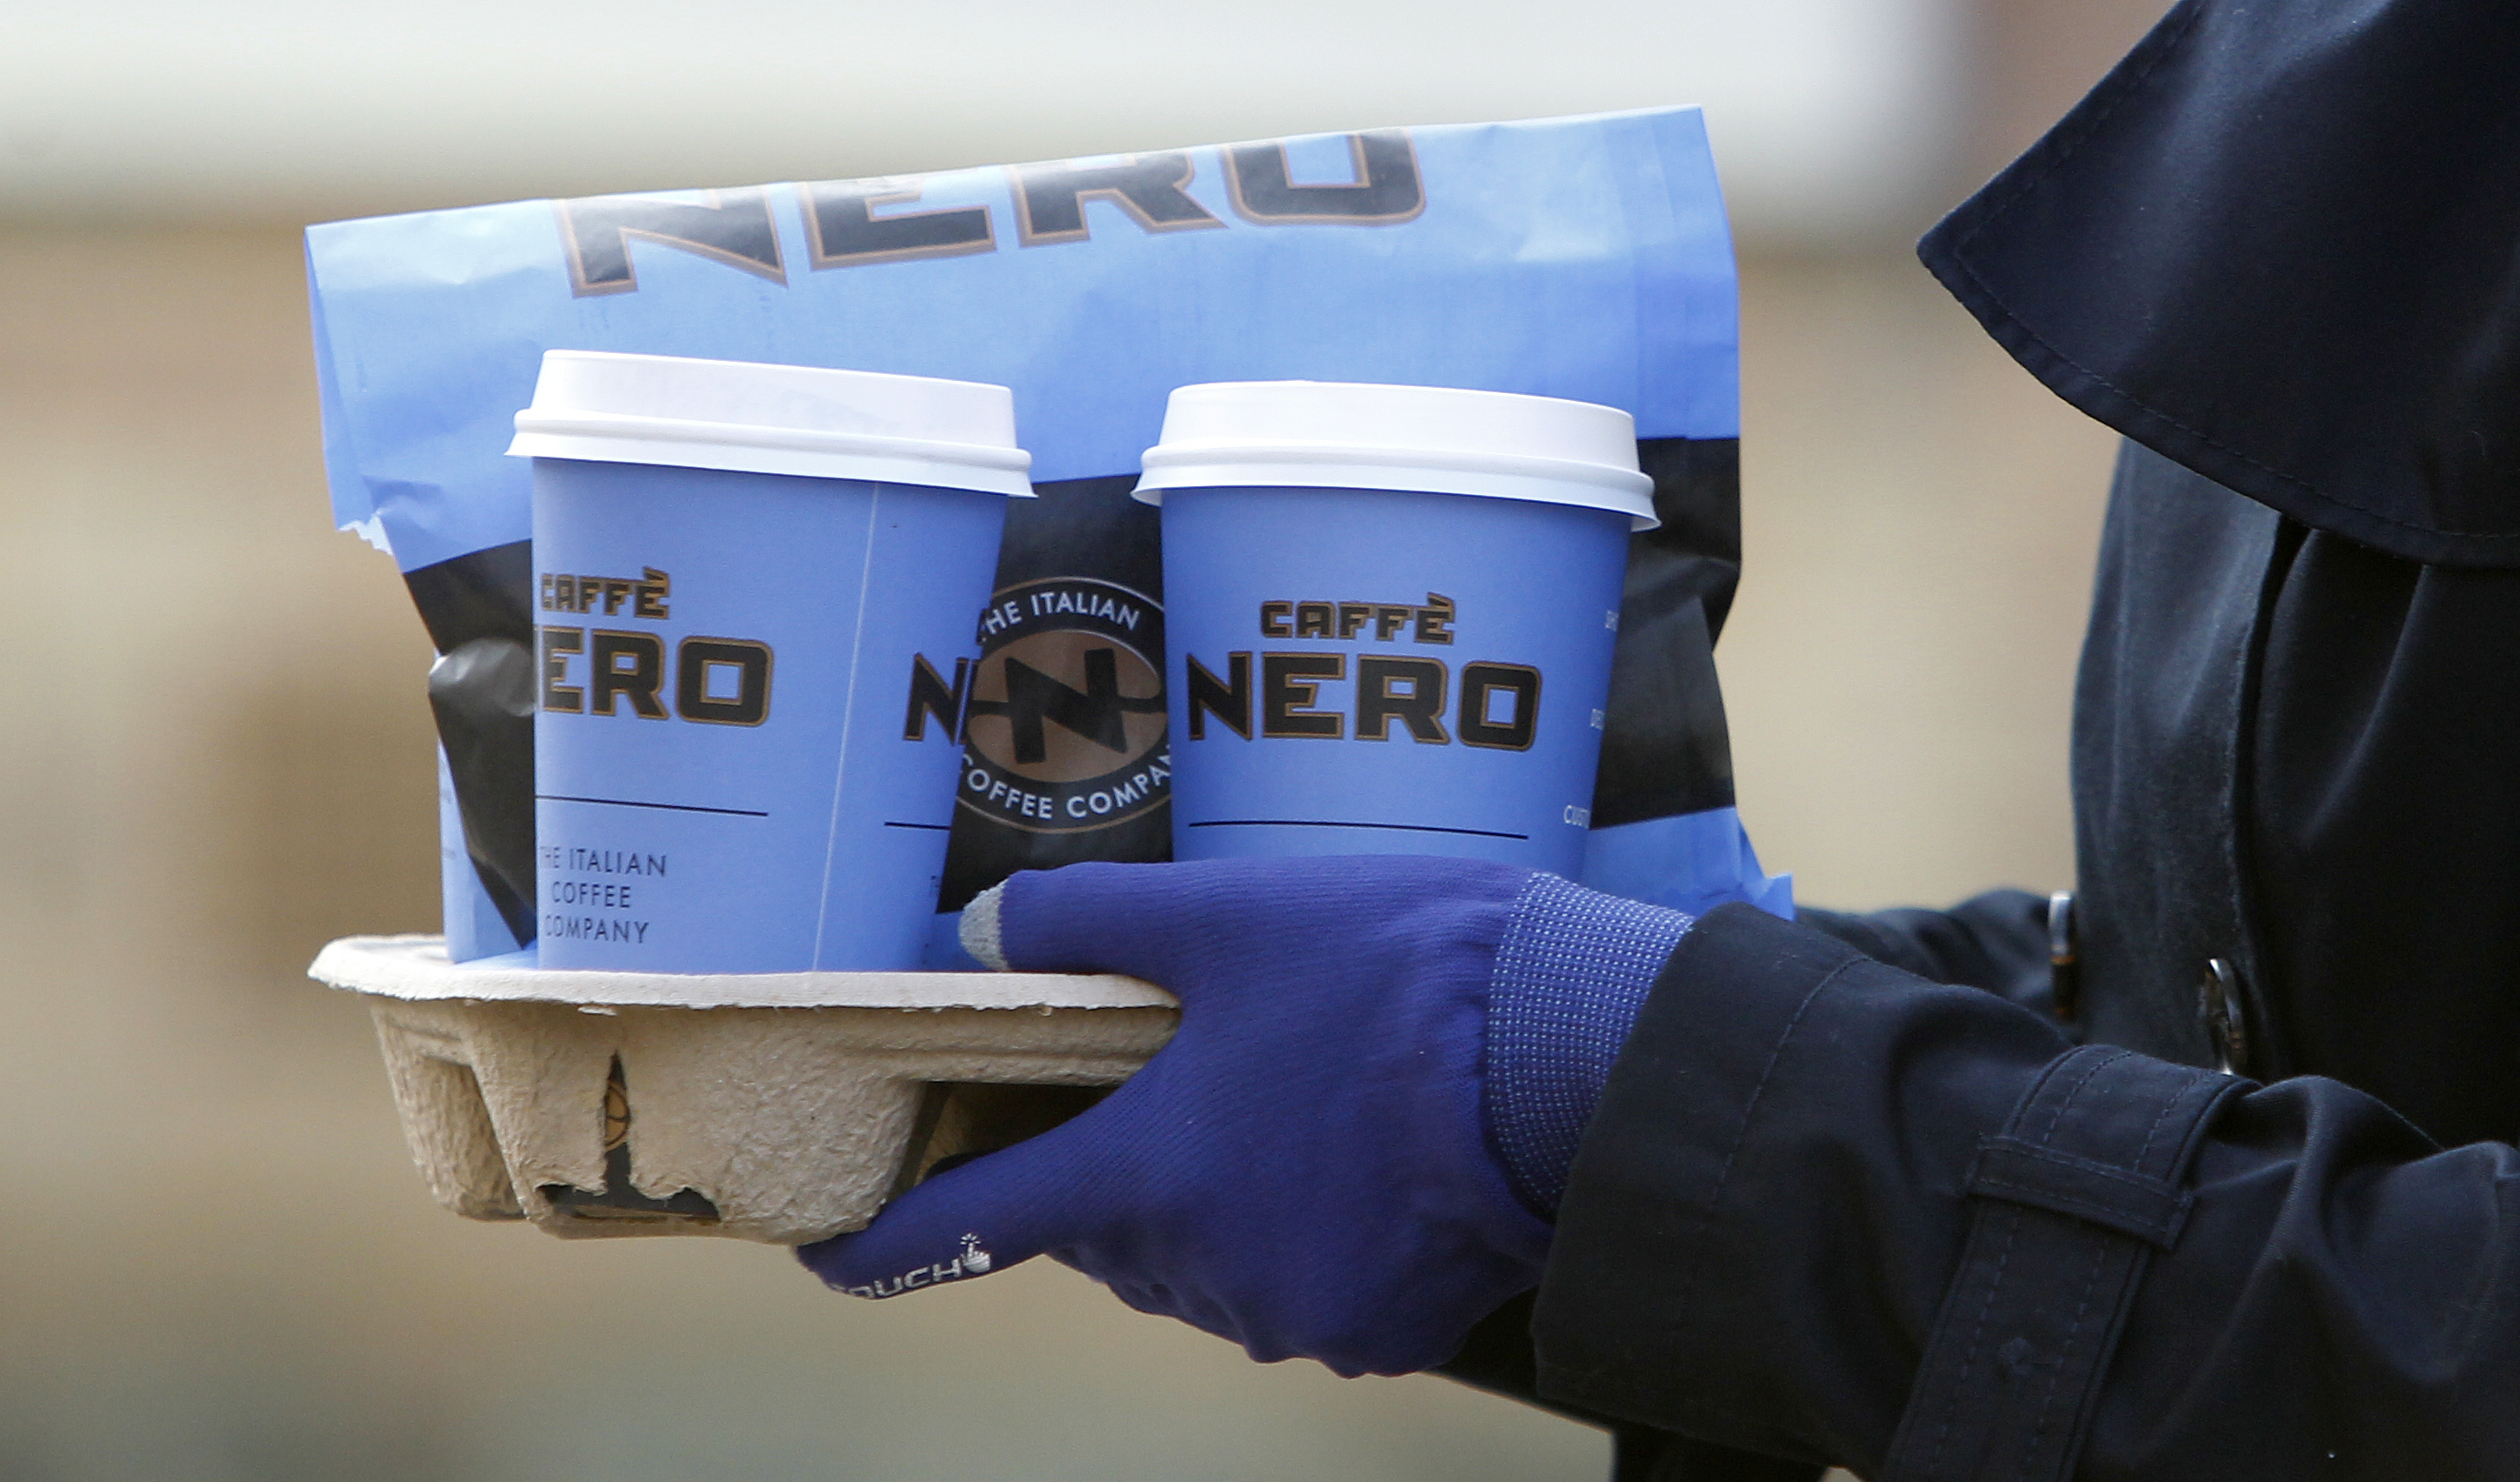 Caffe Nero's festive drink packs a sugary punch. Credit: PA